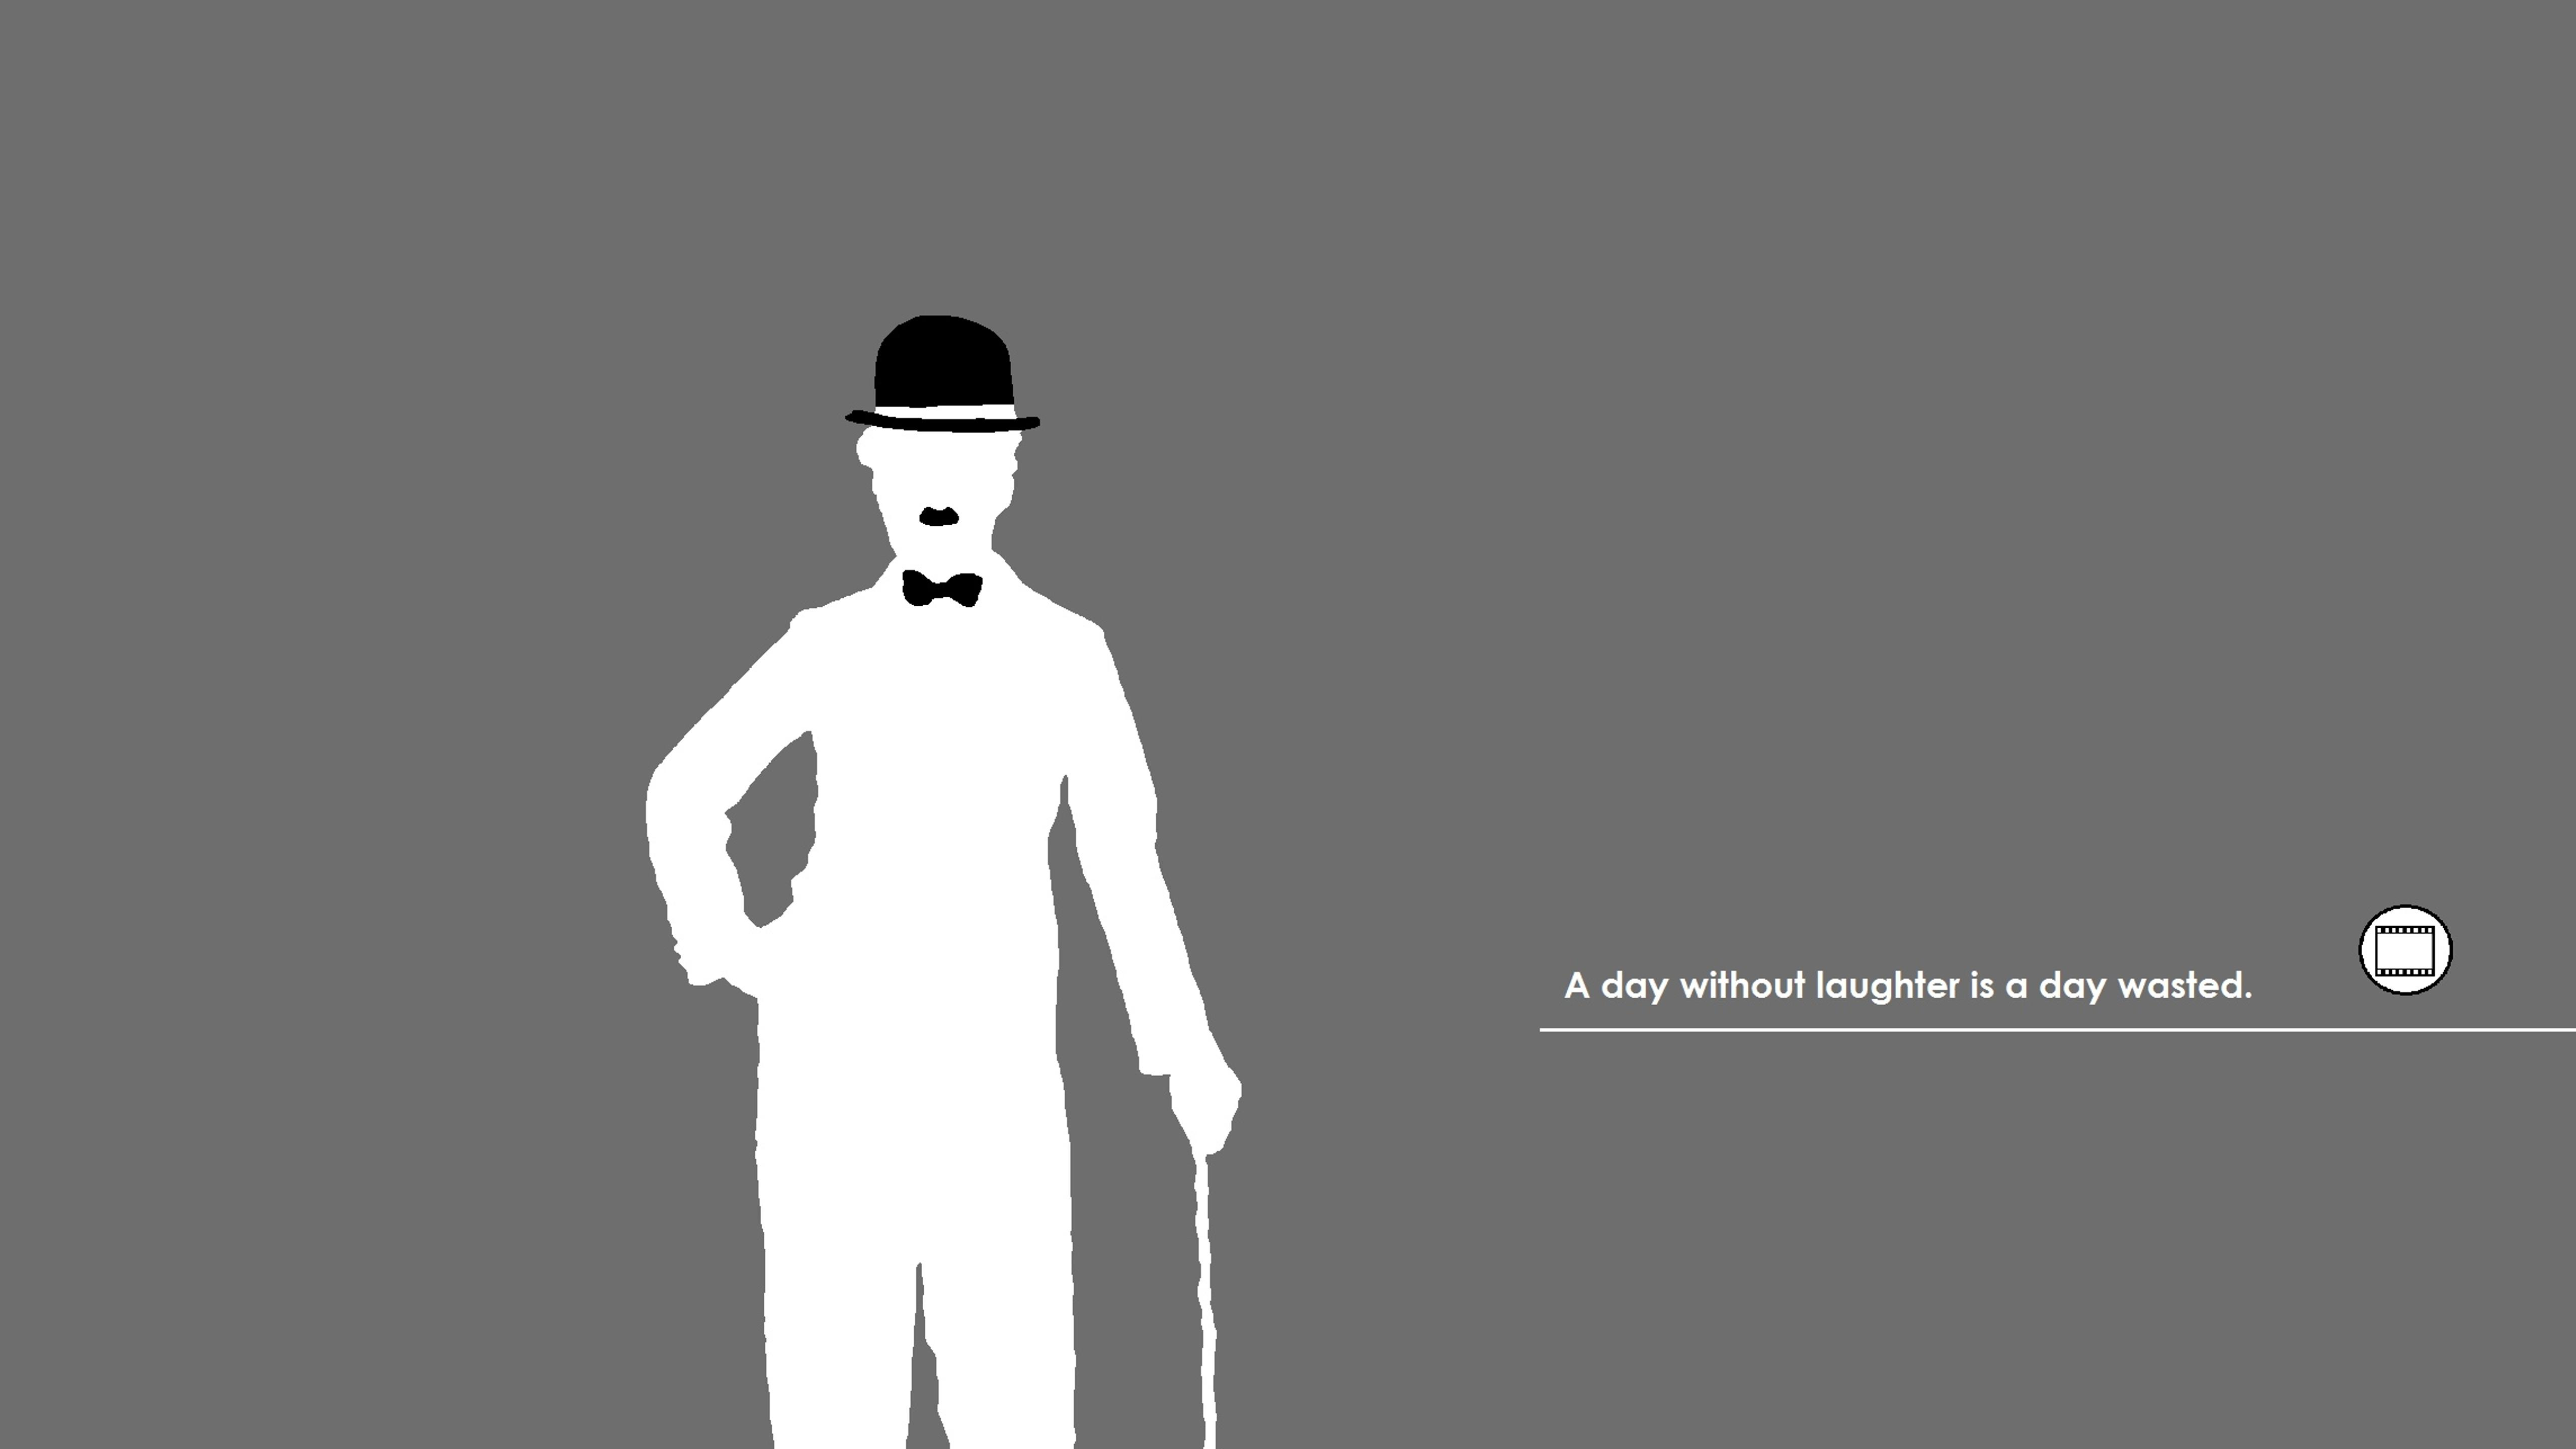 Charlie chaplin quote wallpaper download 5120x2880 thecheapjerseys Images